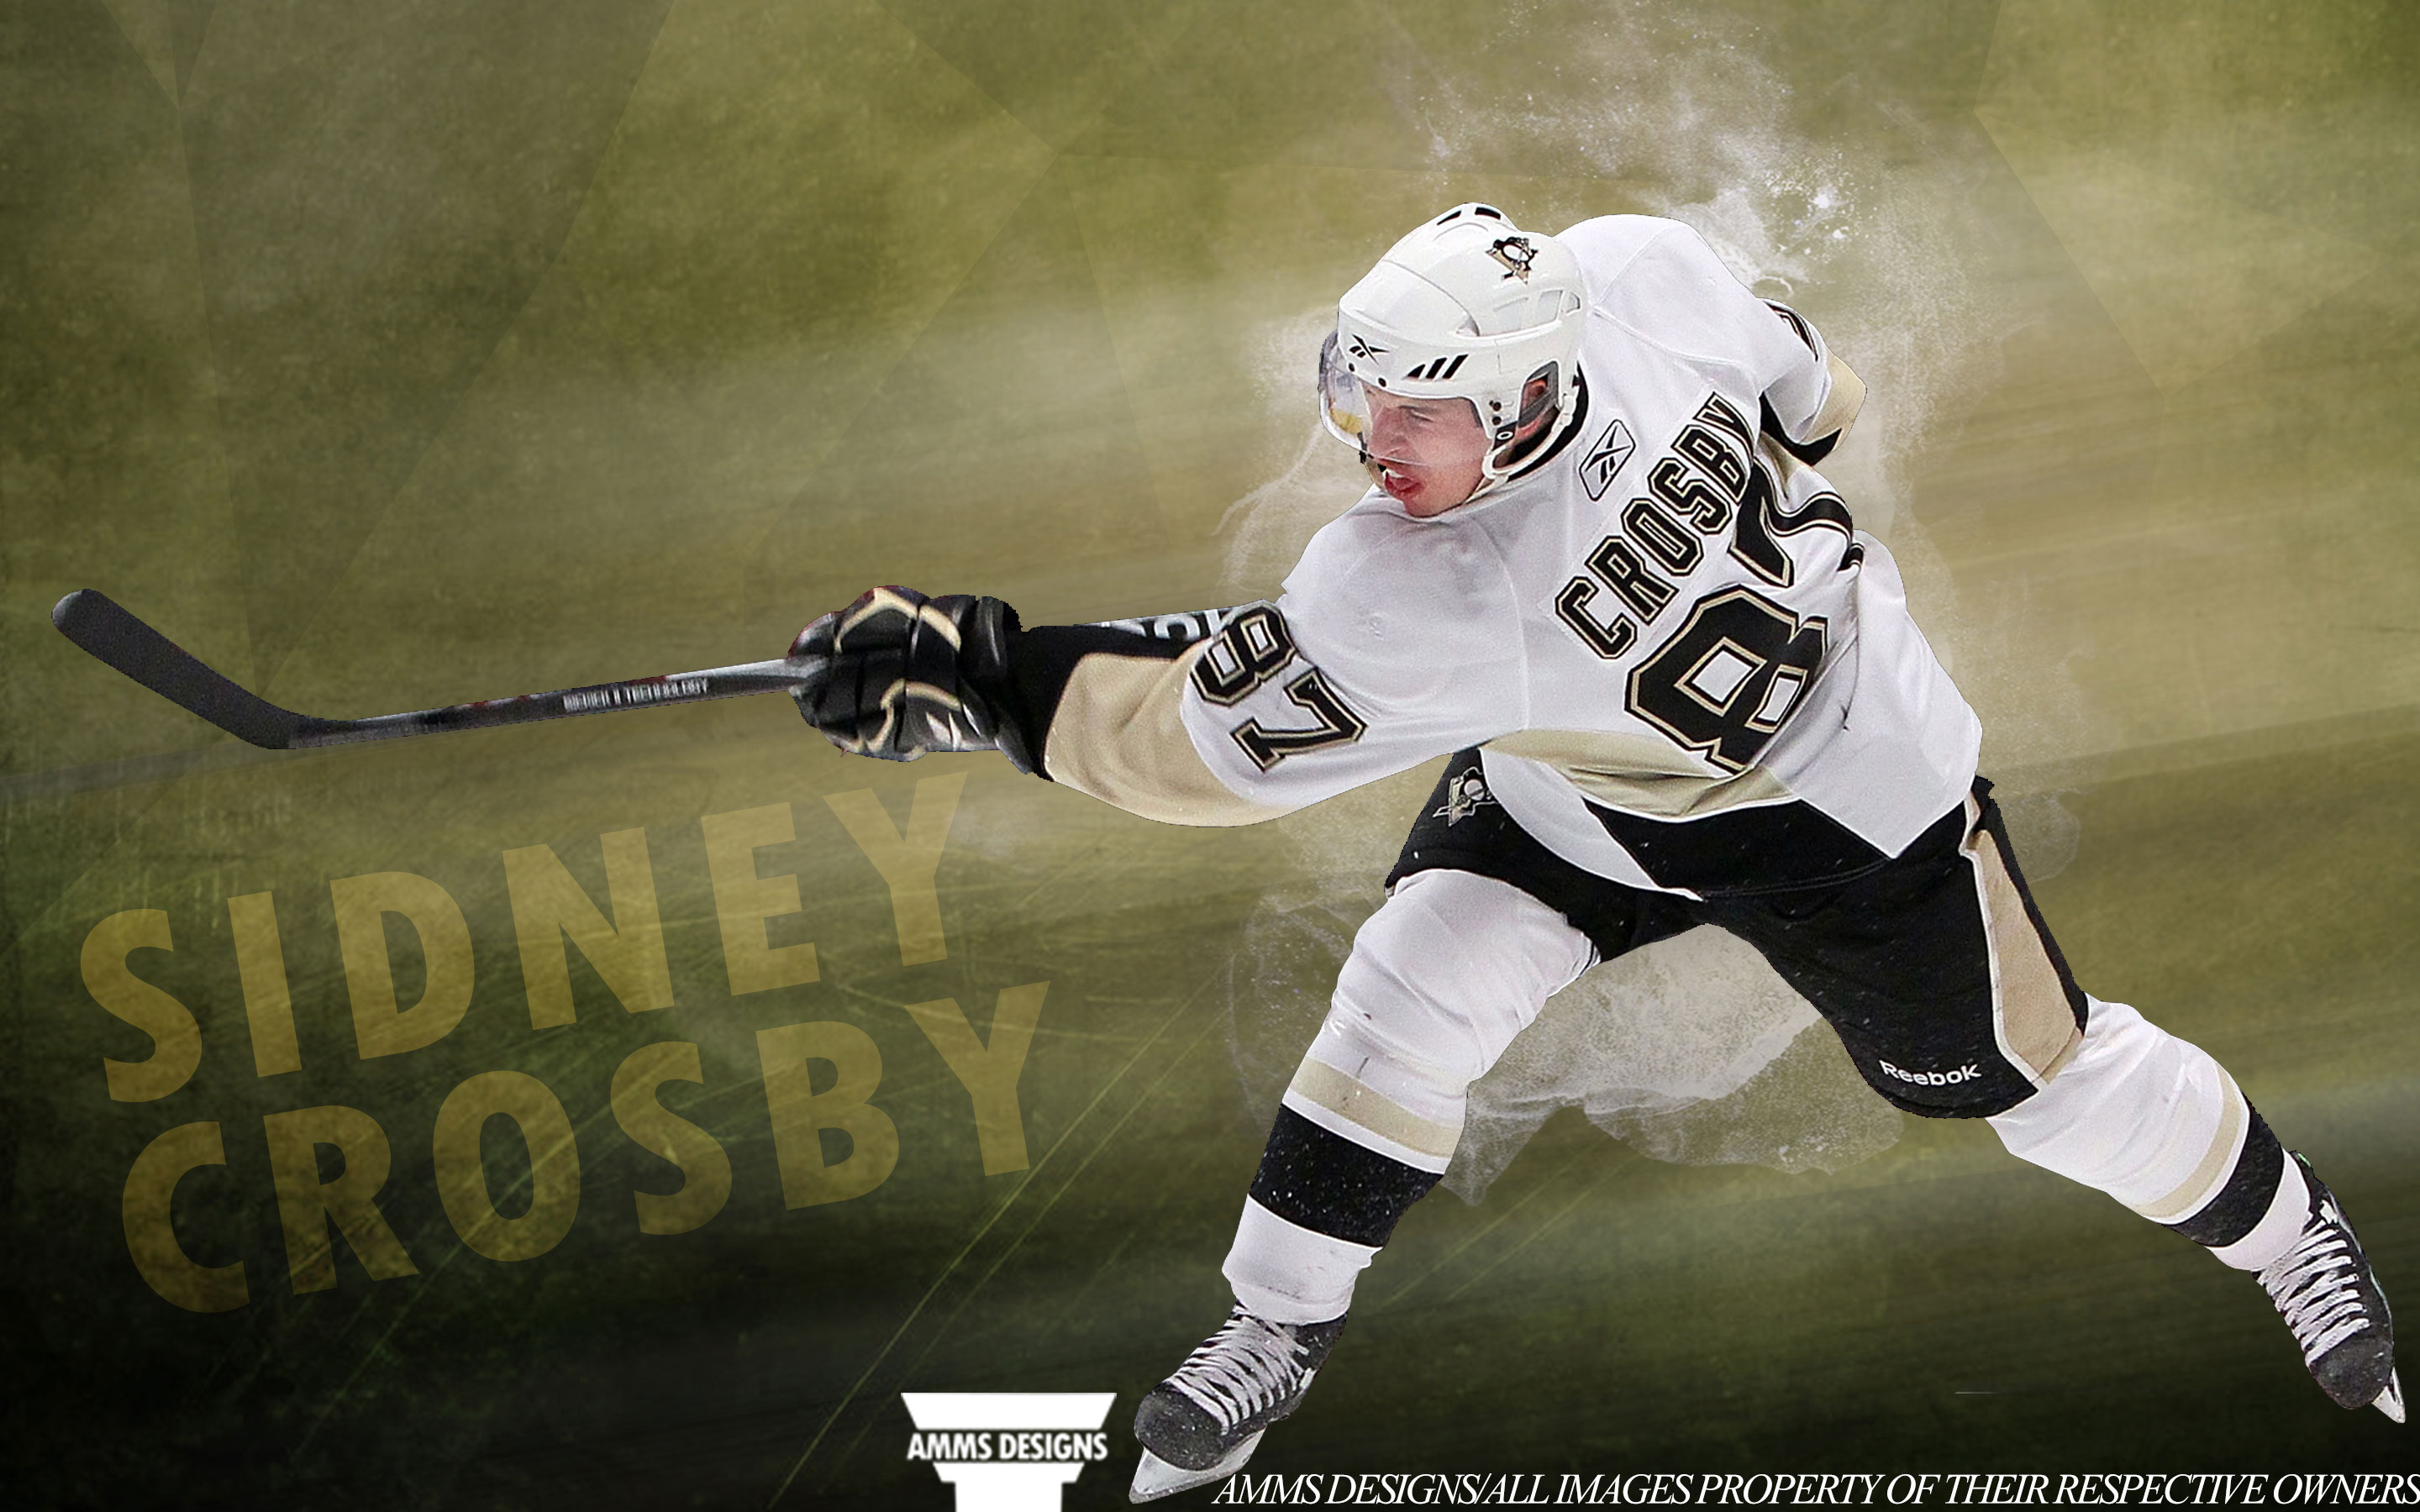 sidney crosby wallpaper nhl - photo #37